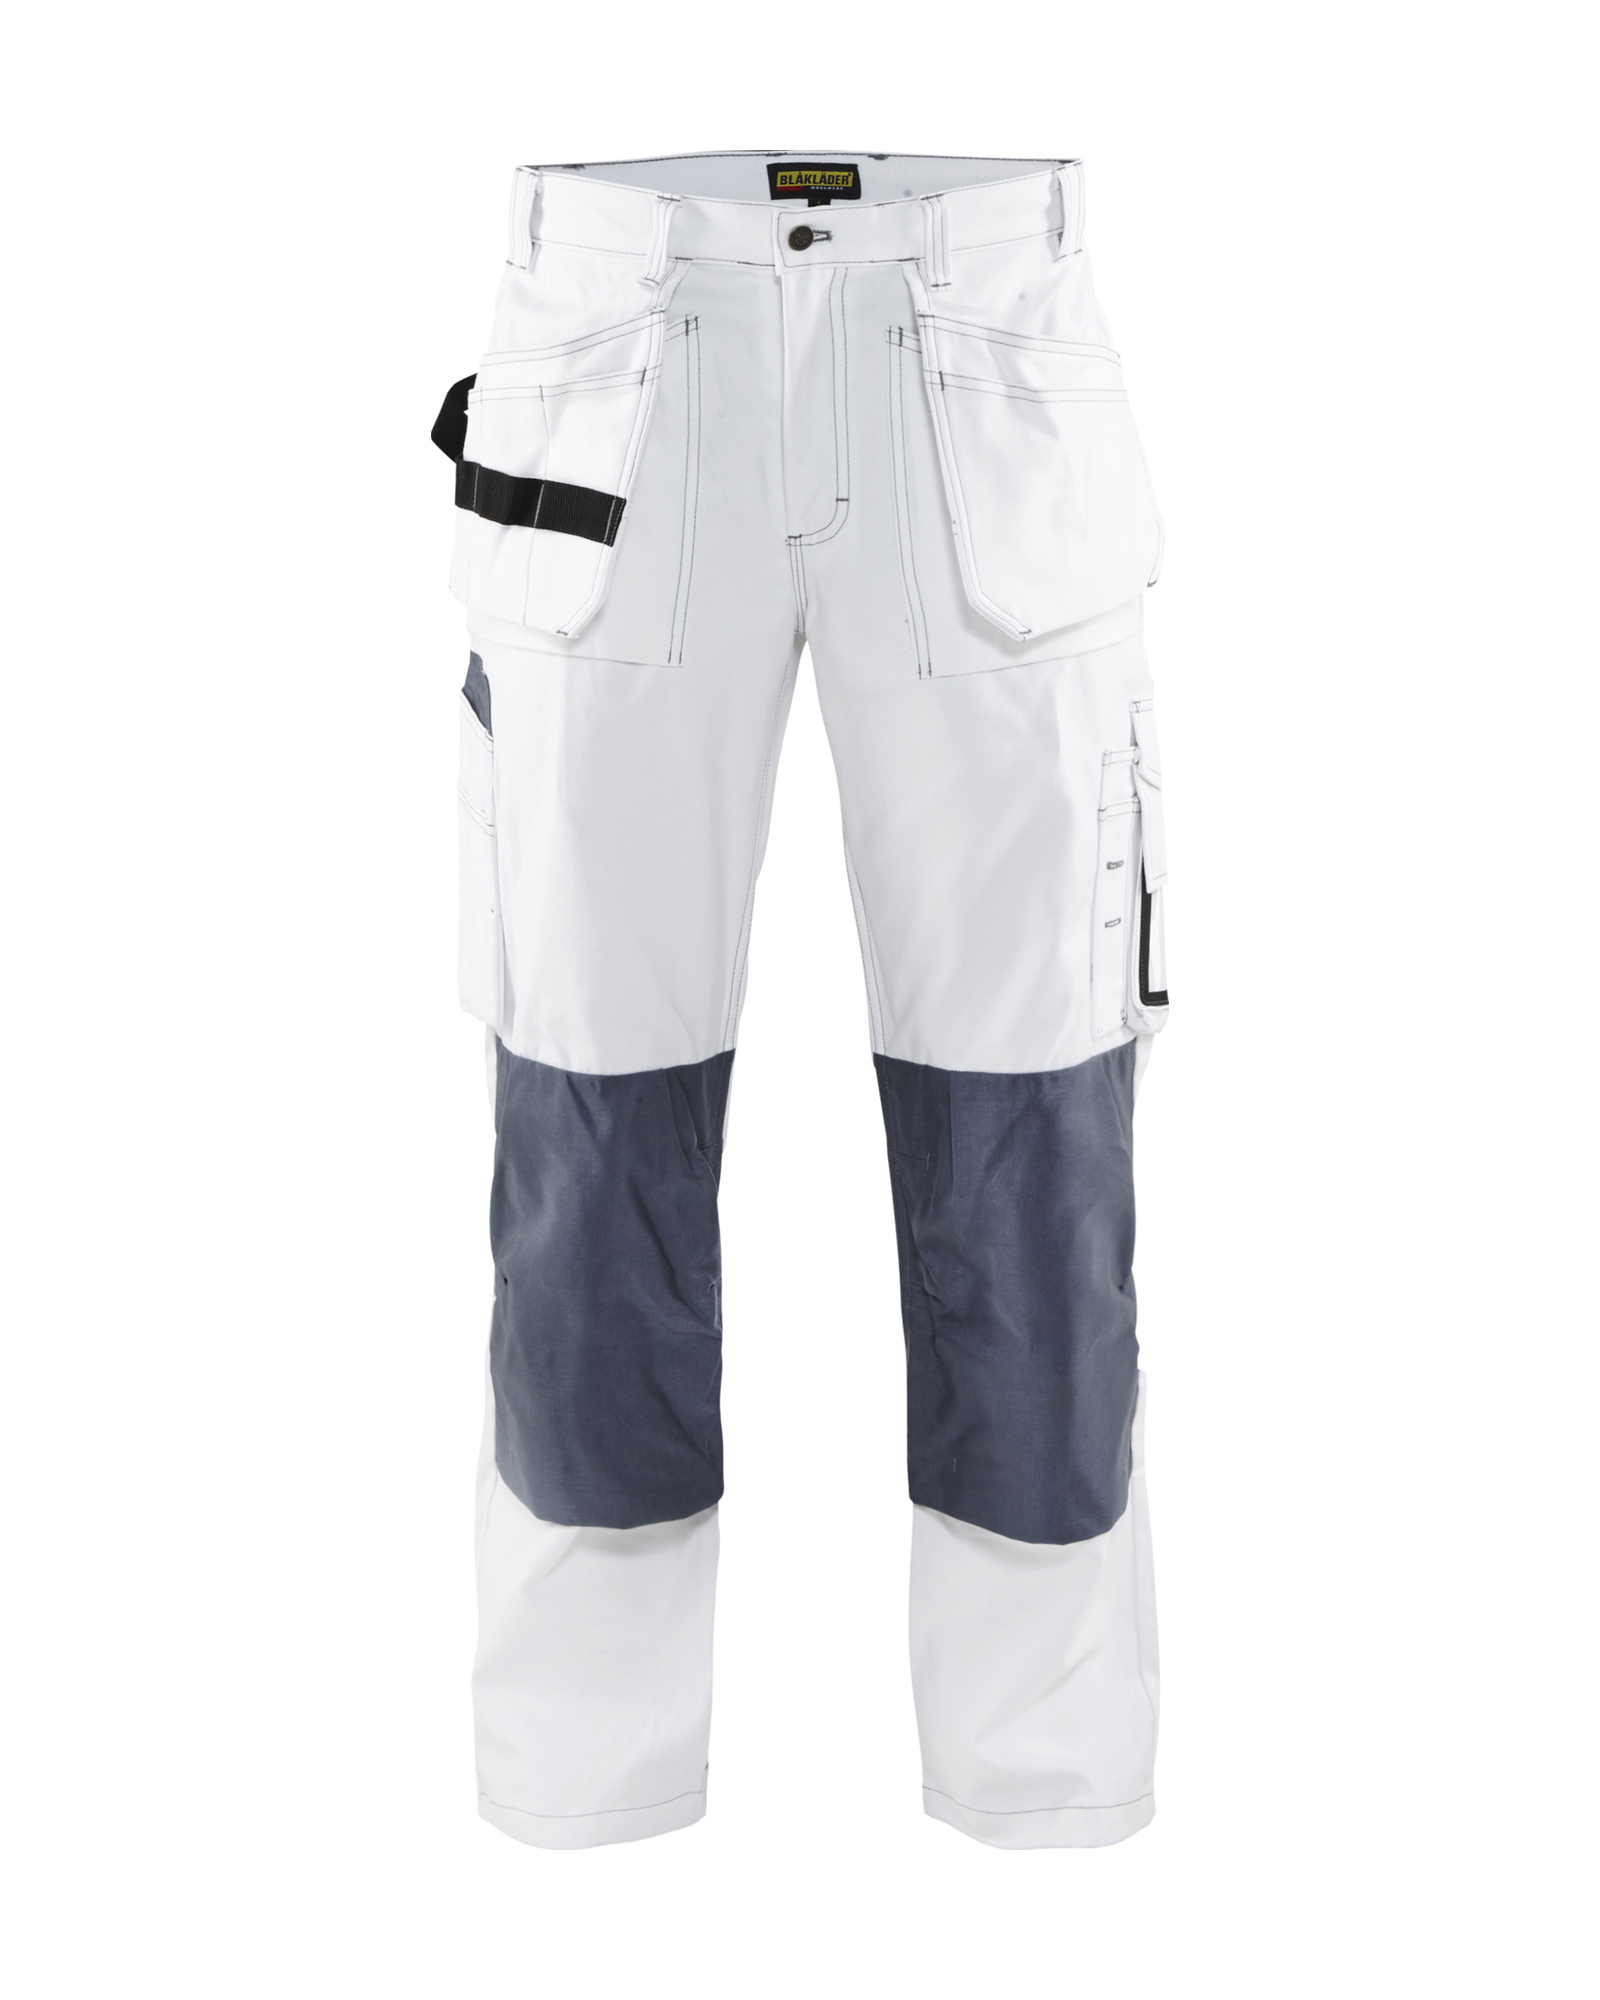 BLAKLADER 1531 COTTON WHITE PAINTERS TROUSERS MULTIPOCKETS WORK PANTS DECORATOR